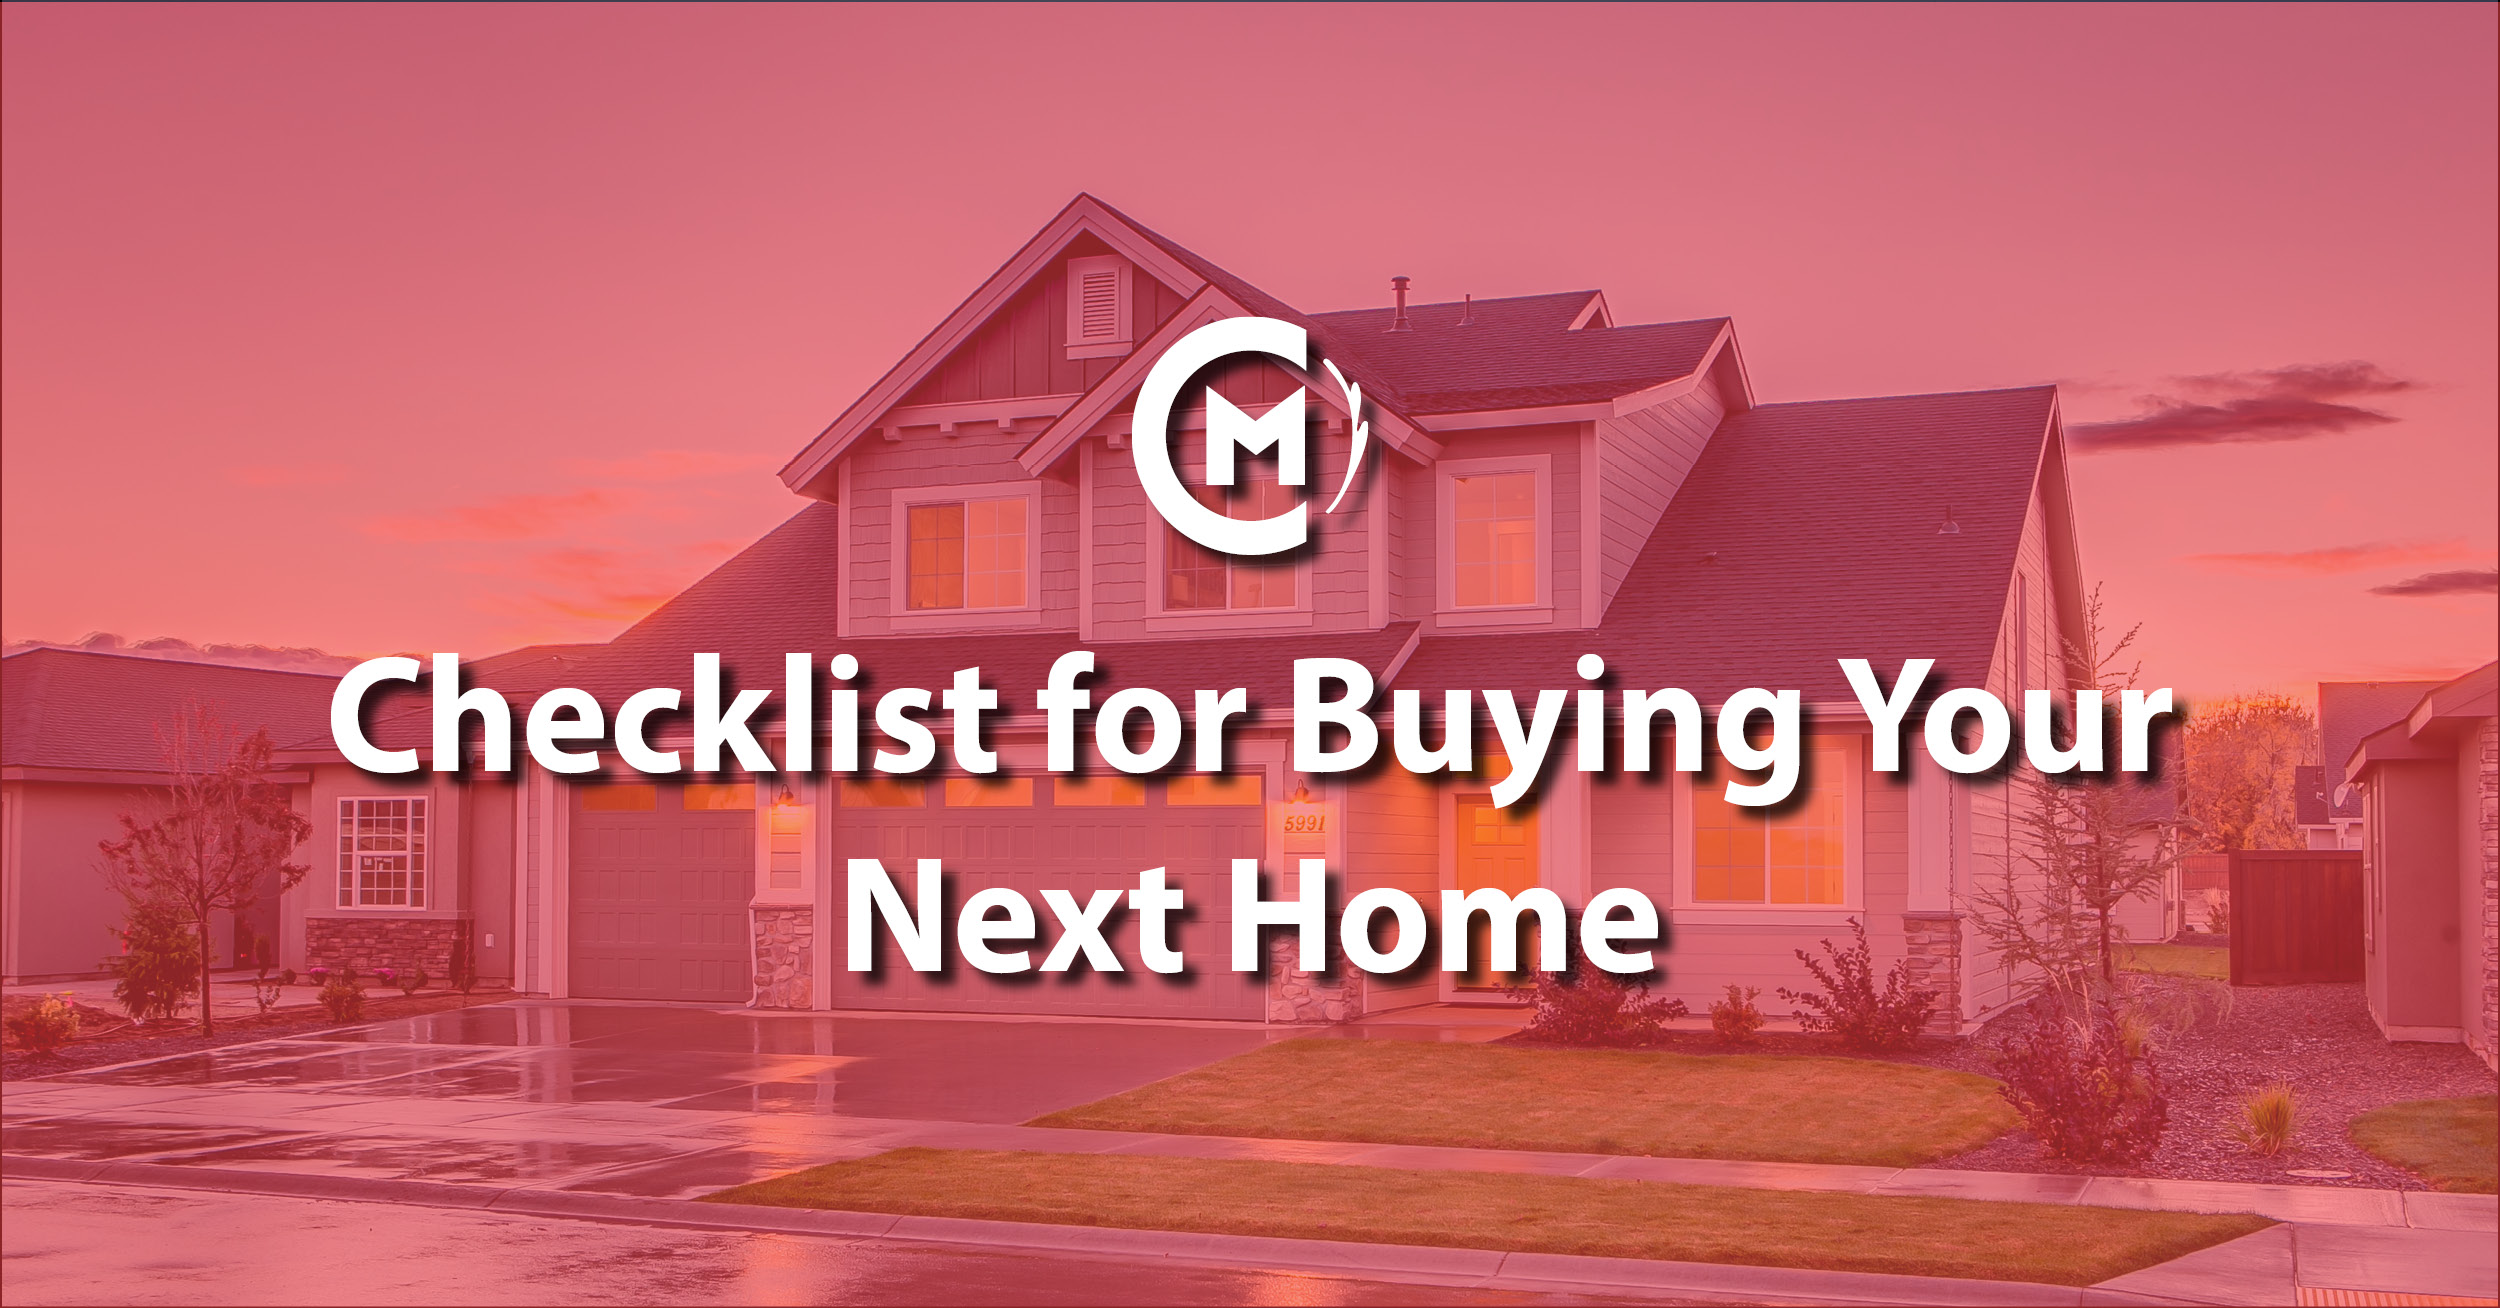 checklist-for-buying-your-next-home.jpg